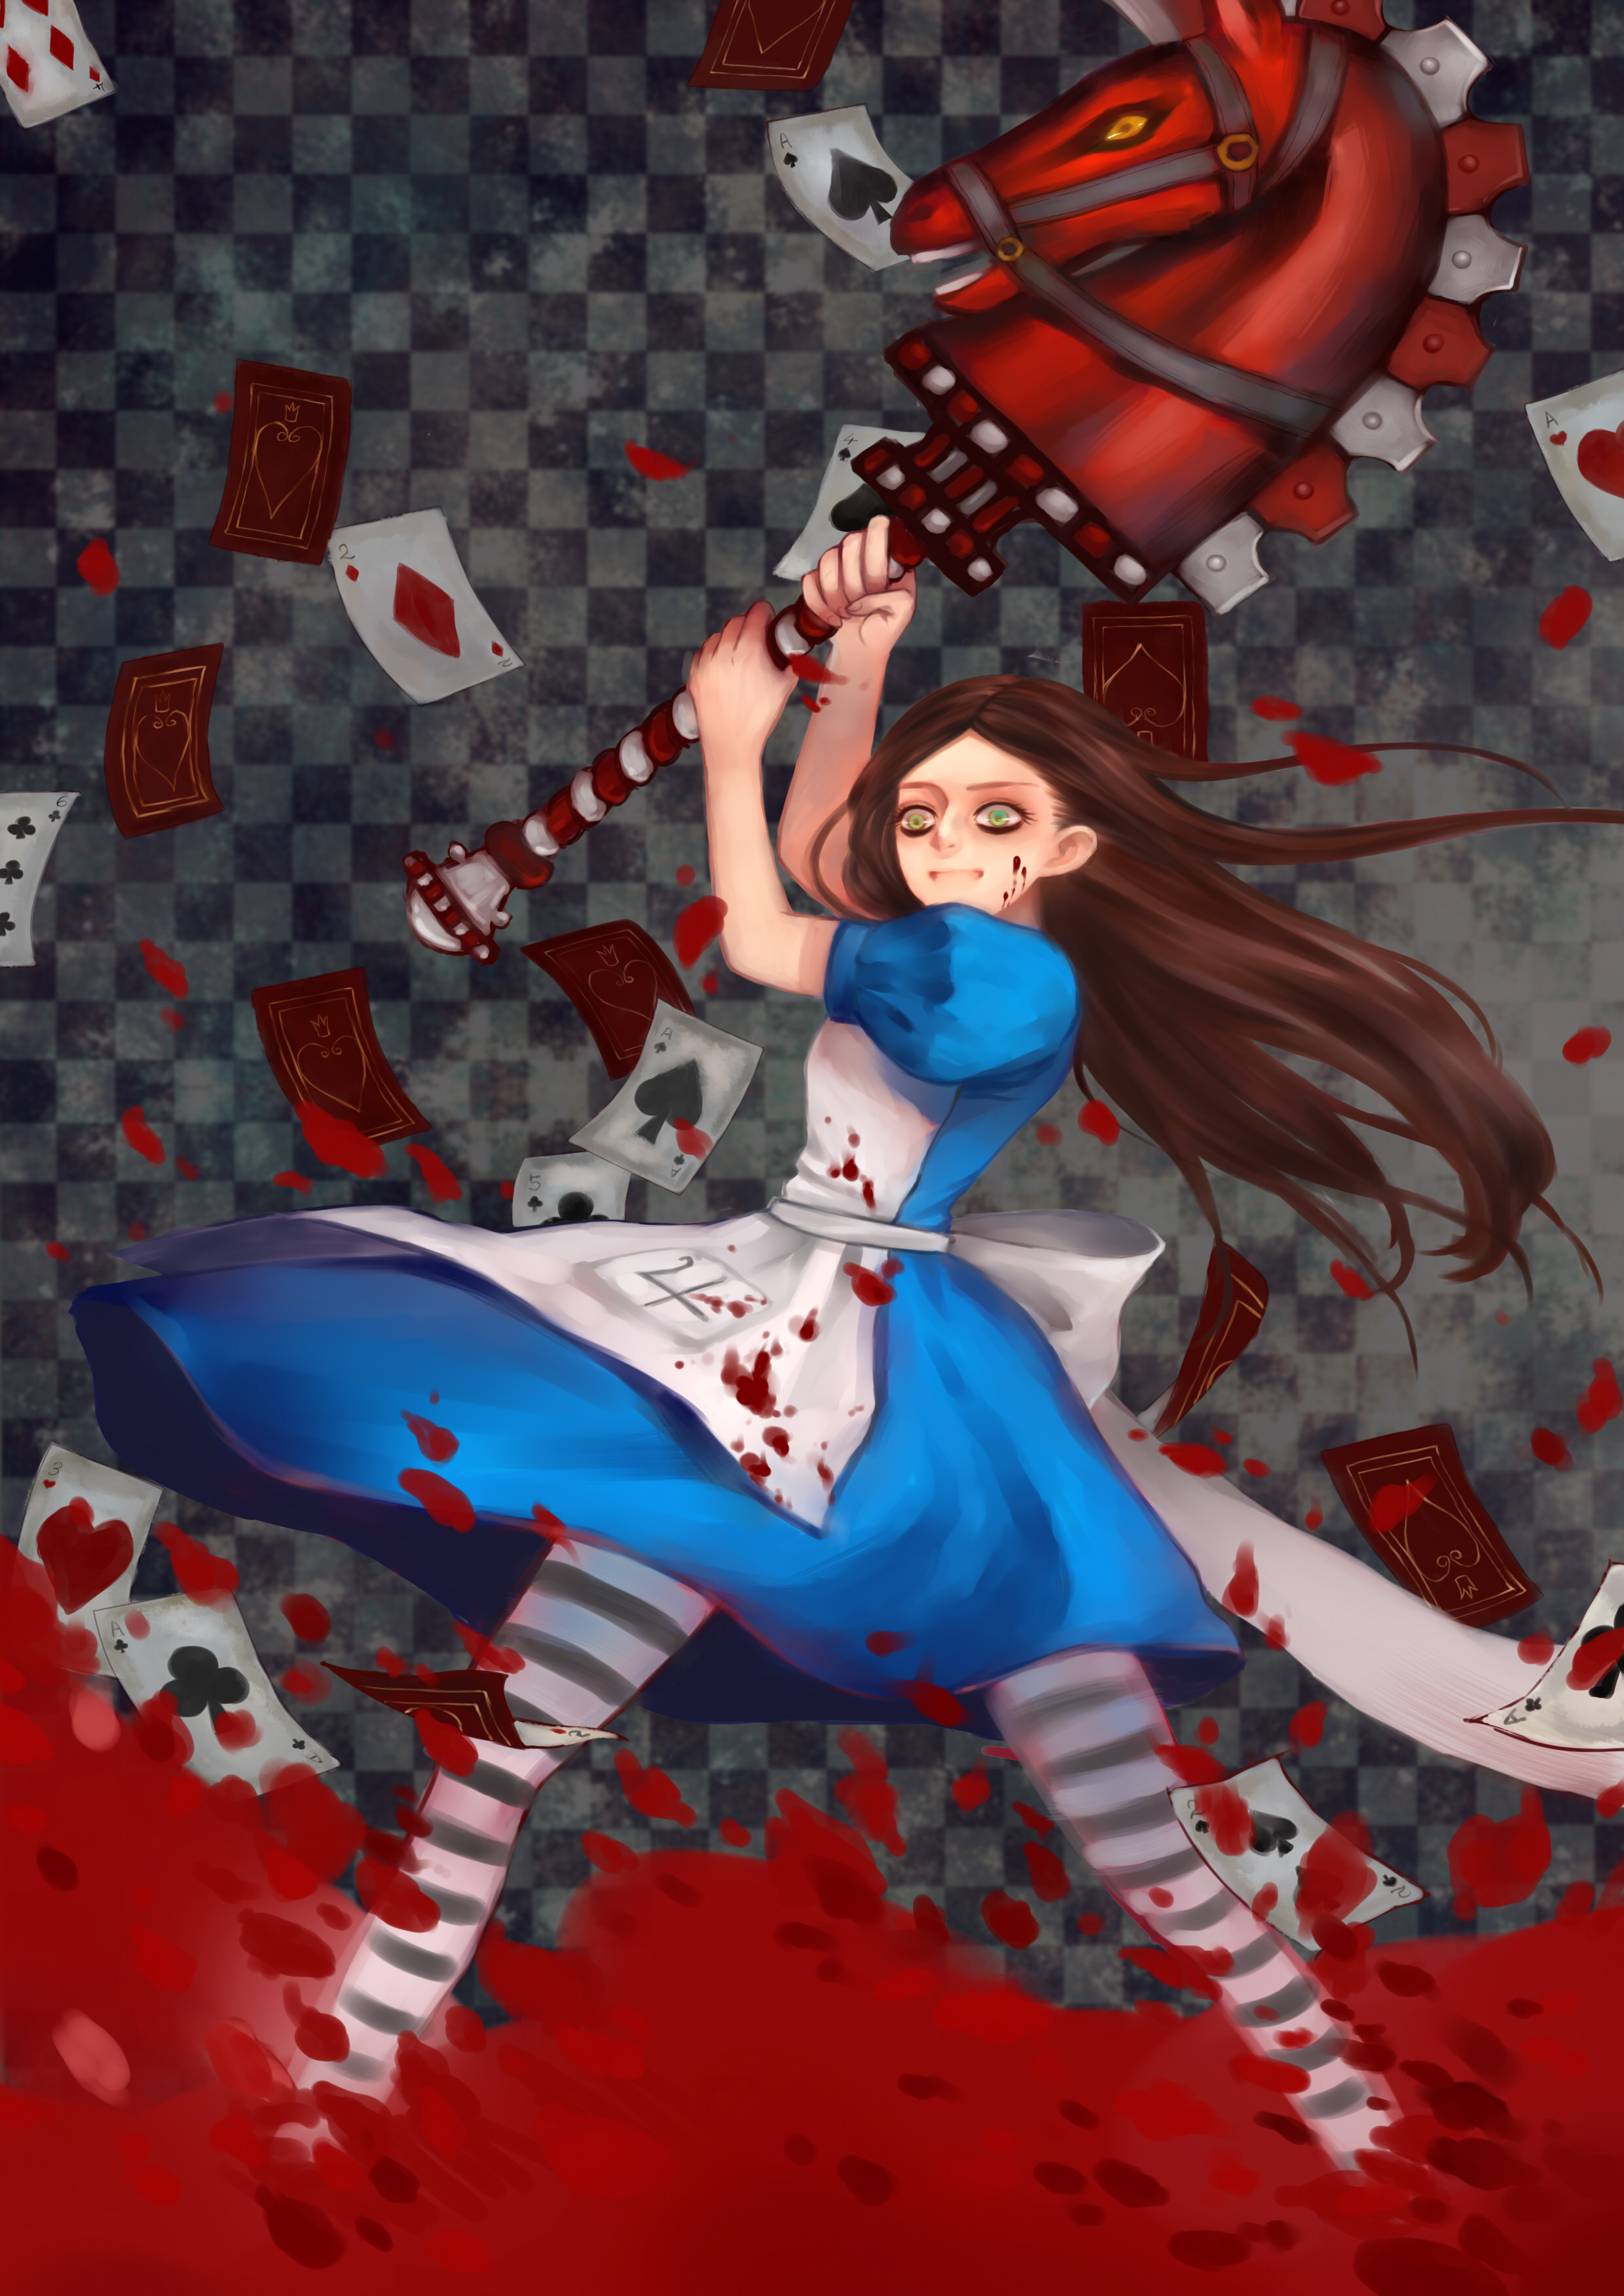 Alice liddell madness returns hentai sfm compilation - 3 3